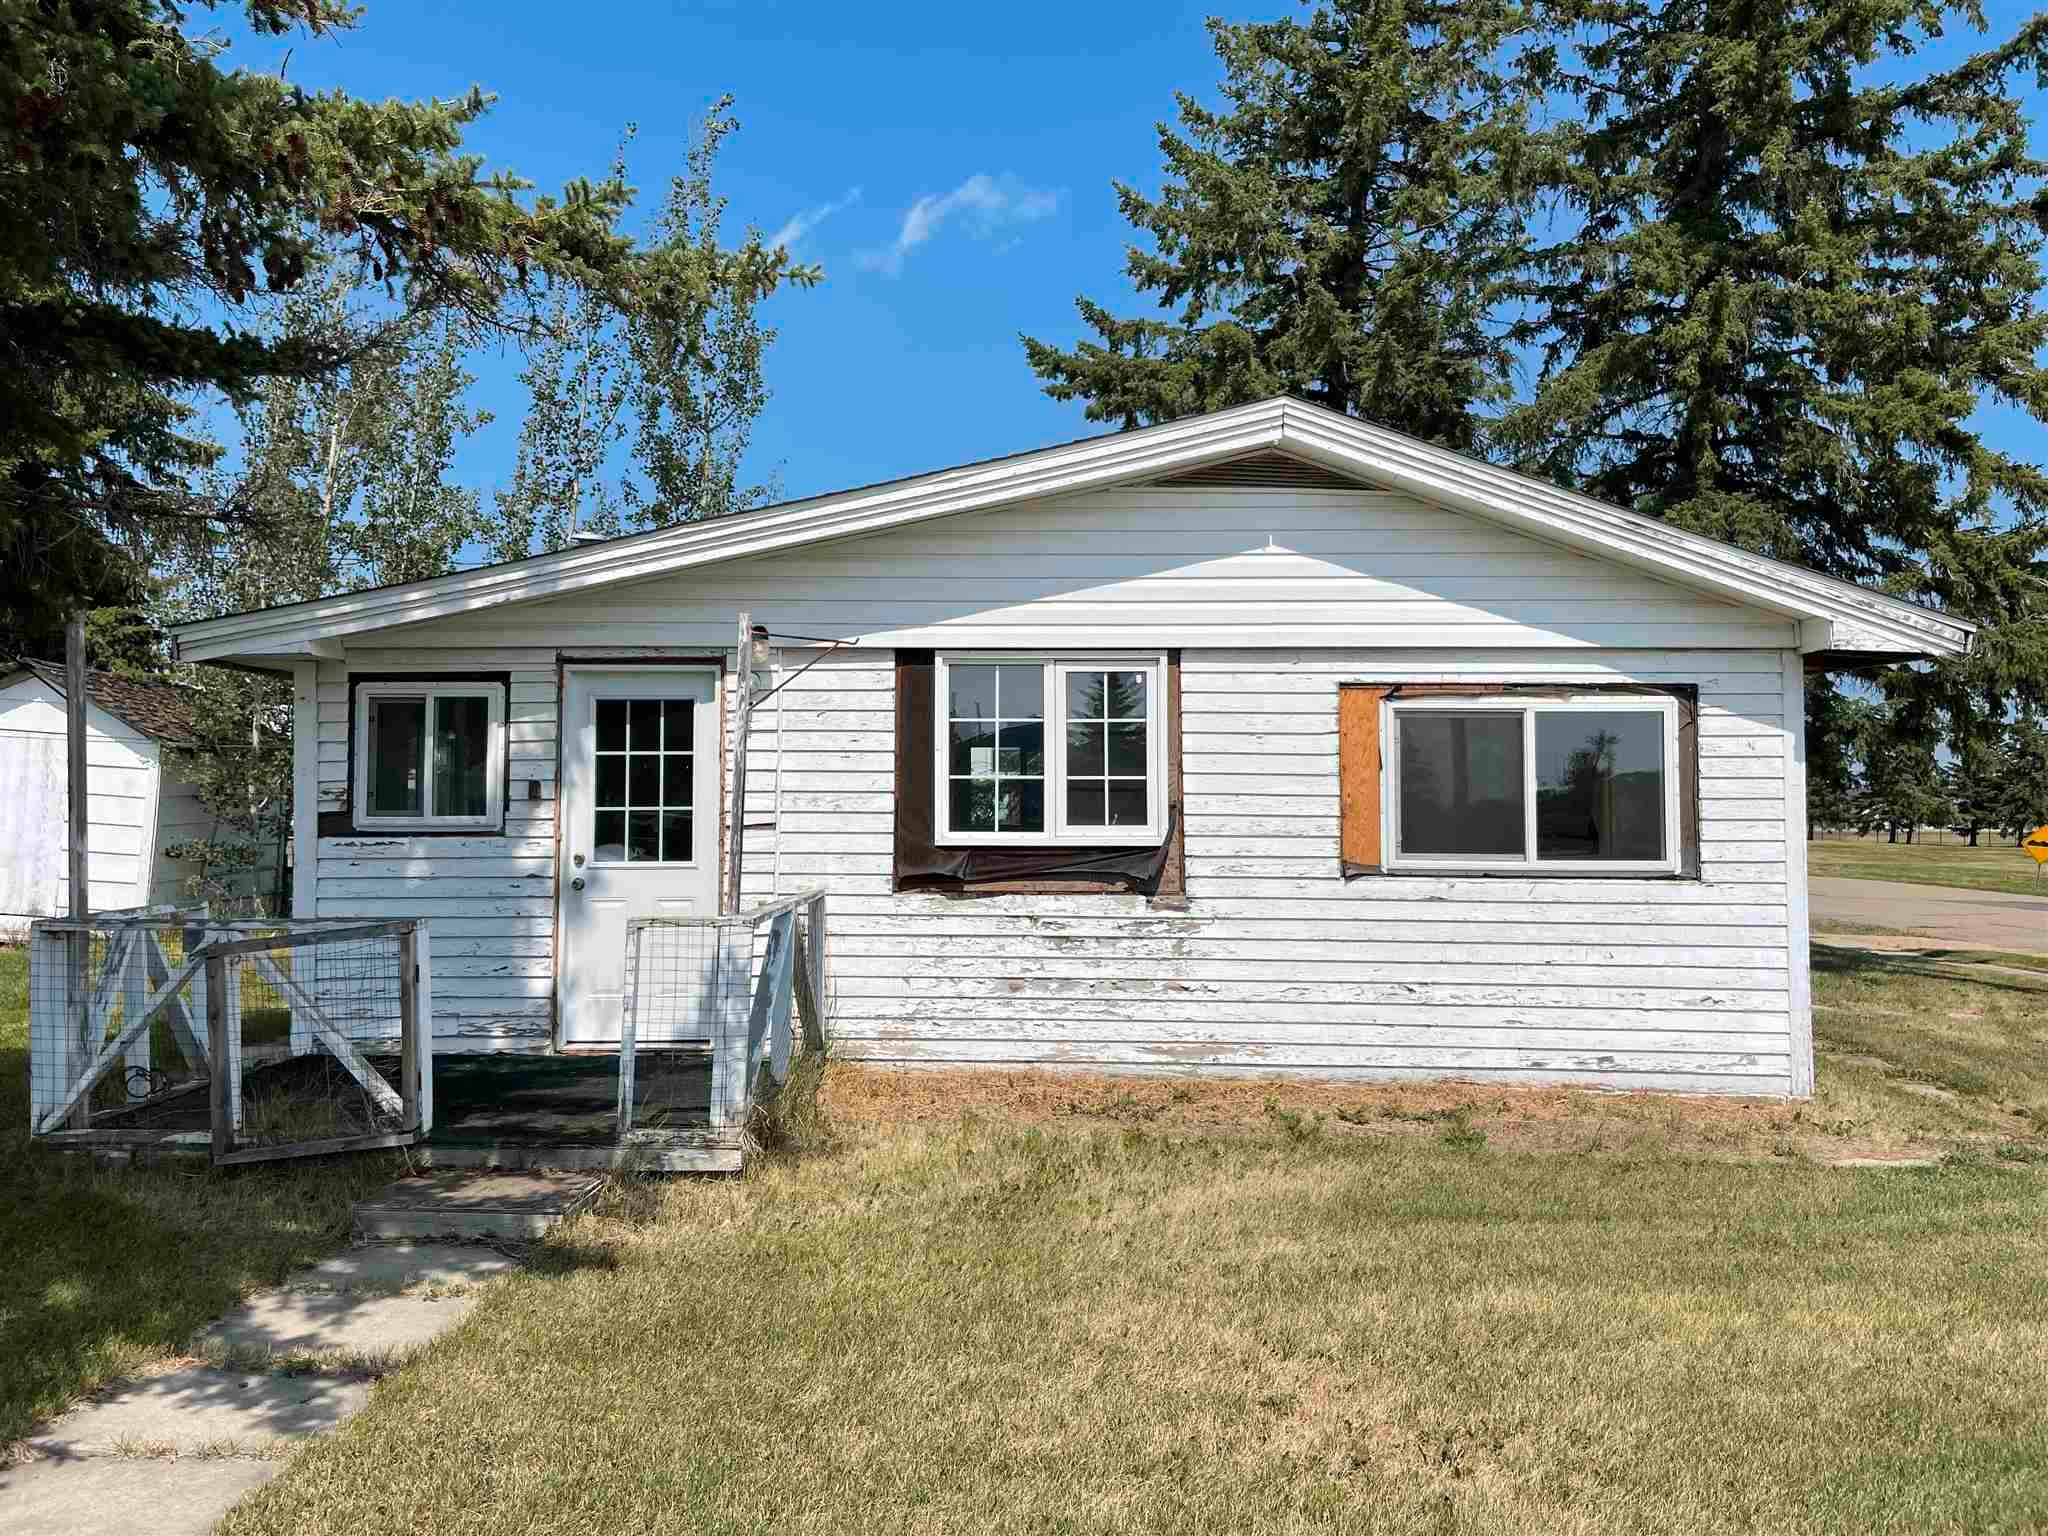 Main Photo: 5404 52 Street: Clyde Vacant Lot for sale : MLS®# E4256253